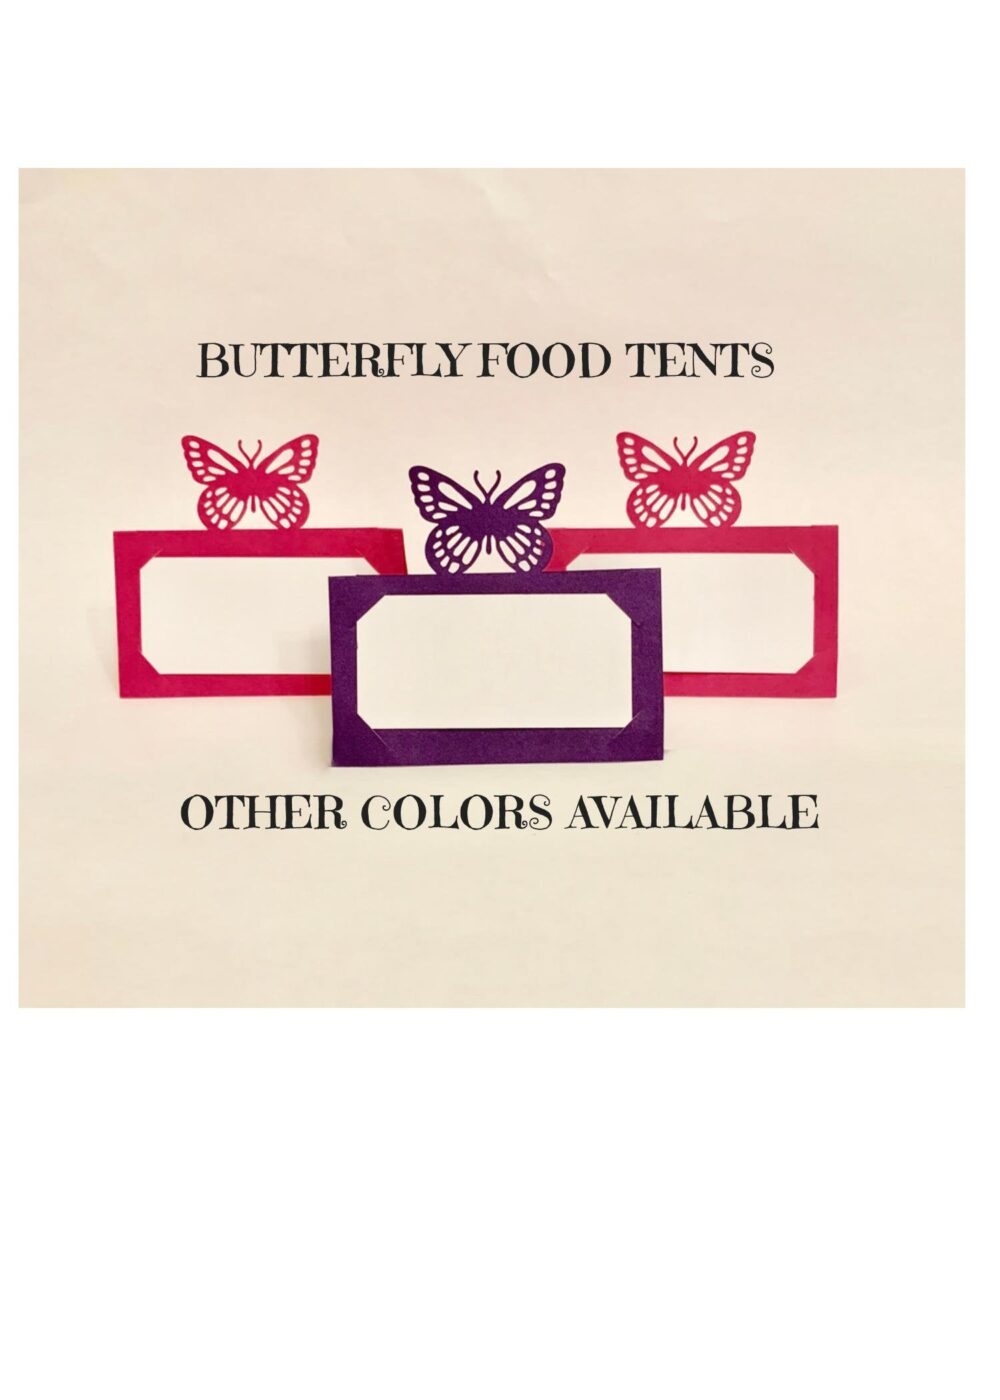 Butterfly Food Tents/Place Cards - Customizable Colors. Pick Your Colors